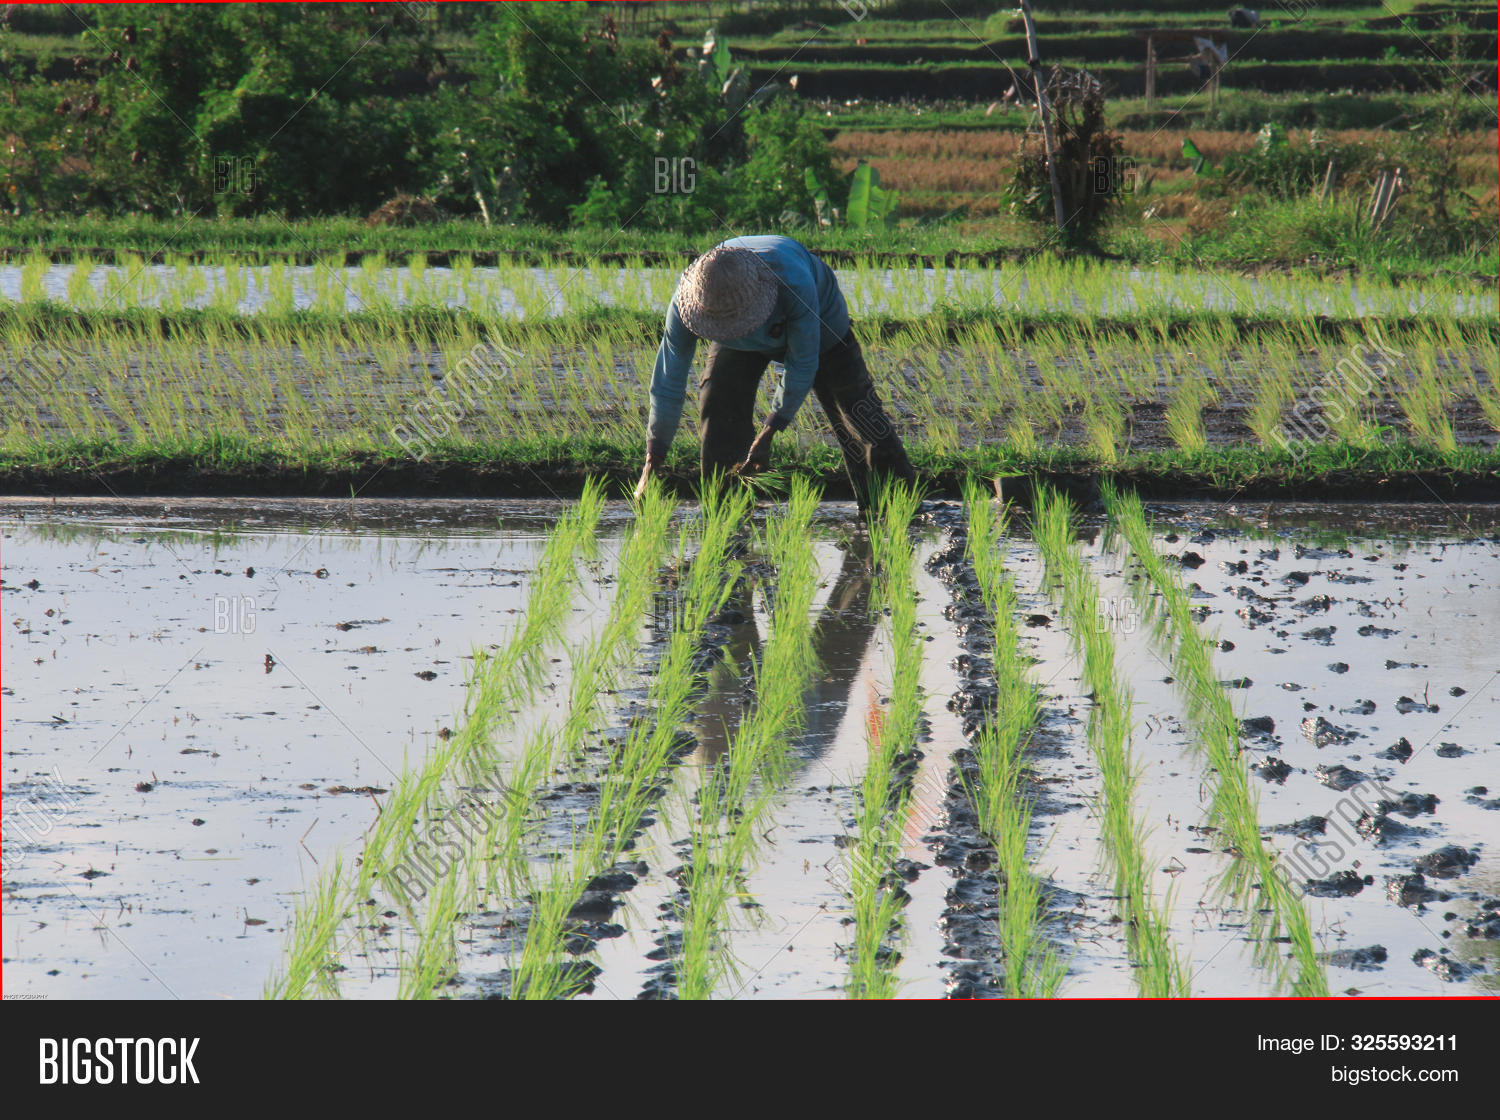 agribusiness,agricultural,agriculture,agronomy,asia,asian,country,dramatic,elderly,farm,farmer,farming,father,field,food,garden,green,grunge,hands,harvest,hill,india,inovation,landscape,macro,man,mountain,myanmar,nature,old,organic,paddy,panorama,plant,potrait,reflection,rice,terrace,terracing,thai,vietnam,village,water,wheat,work,worker,yellow